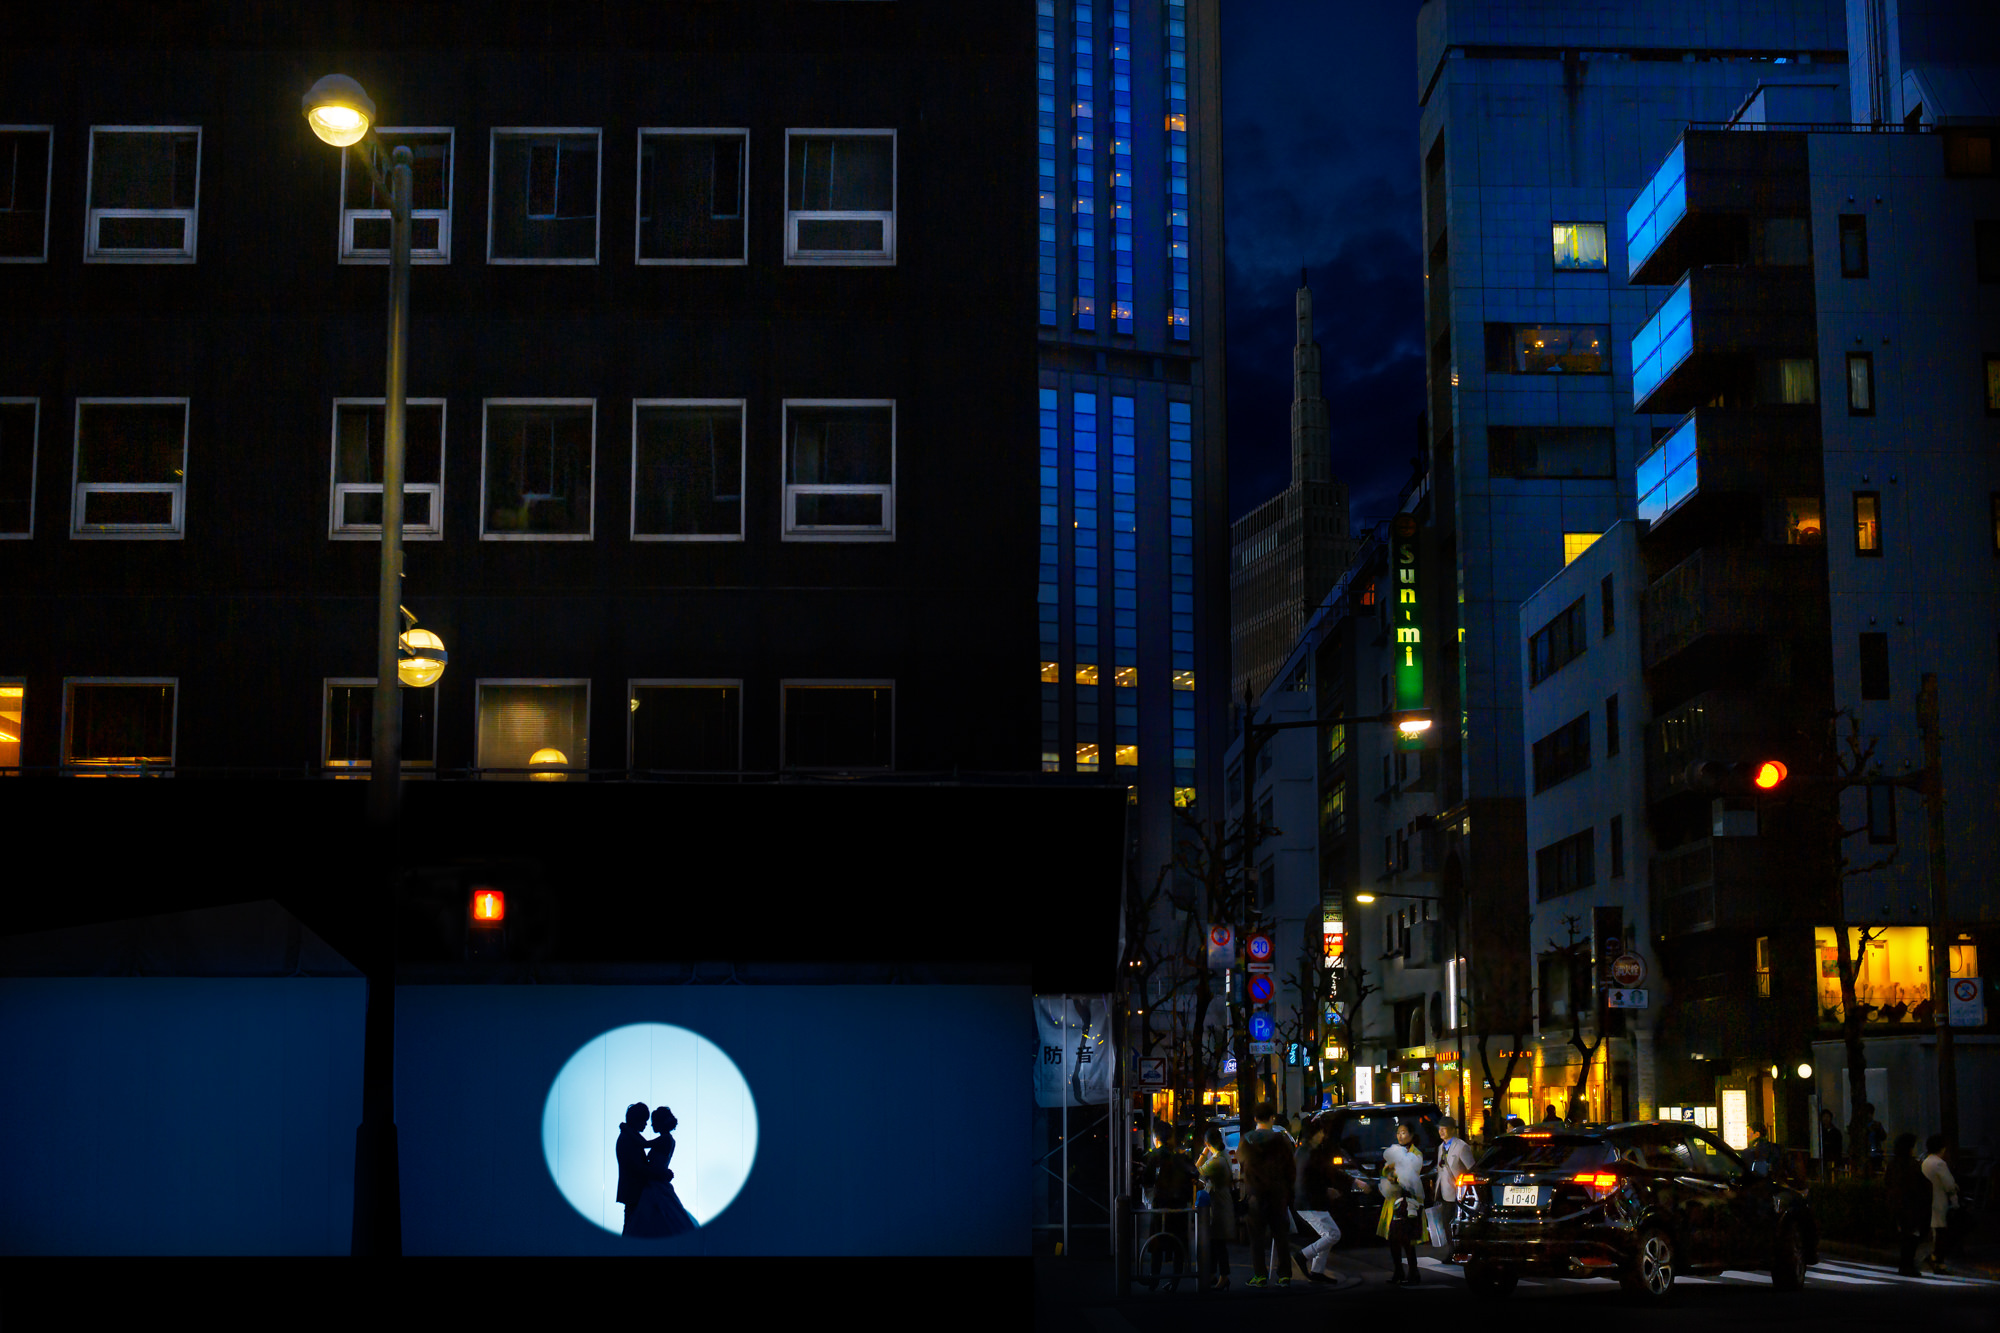 Silhouette of couple in urban spotlight - photo by David Bastianoni